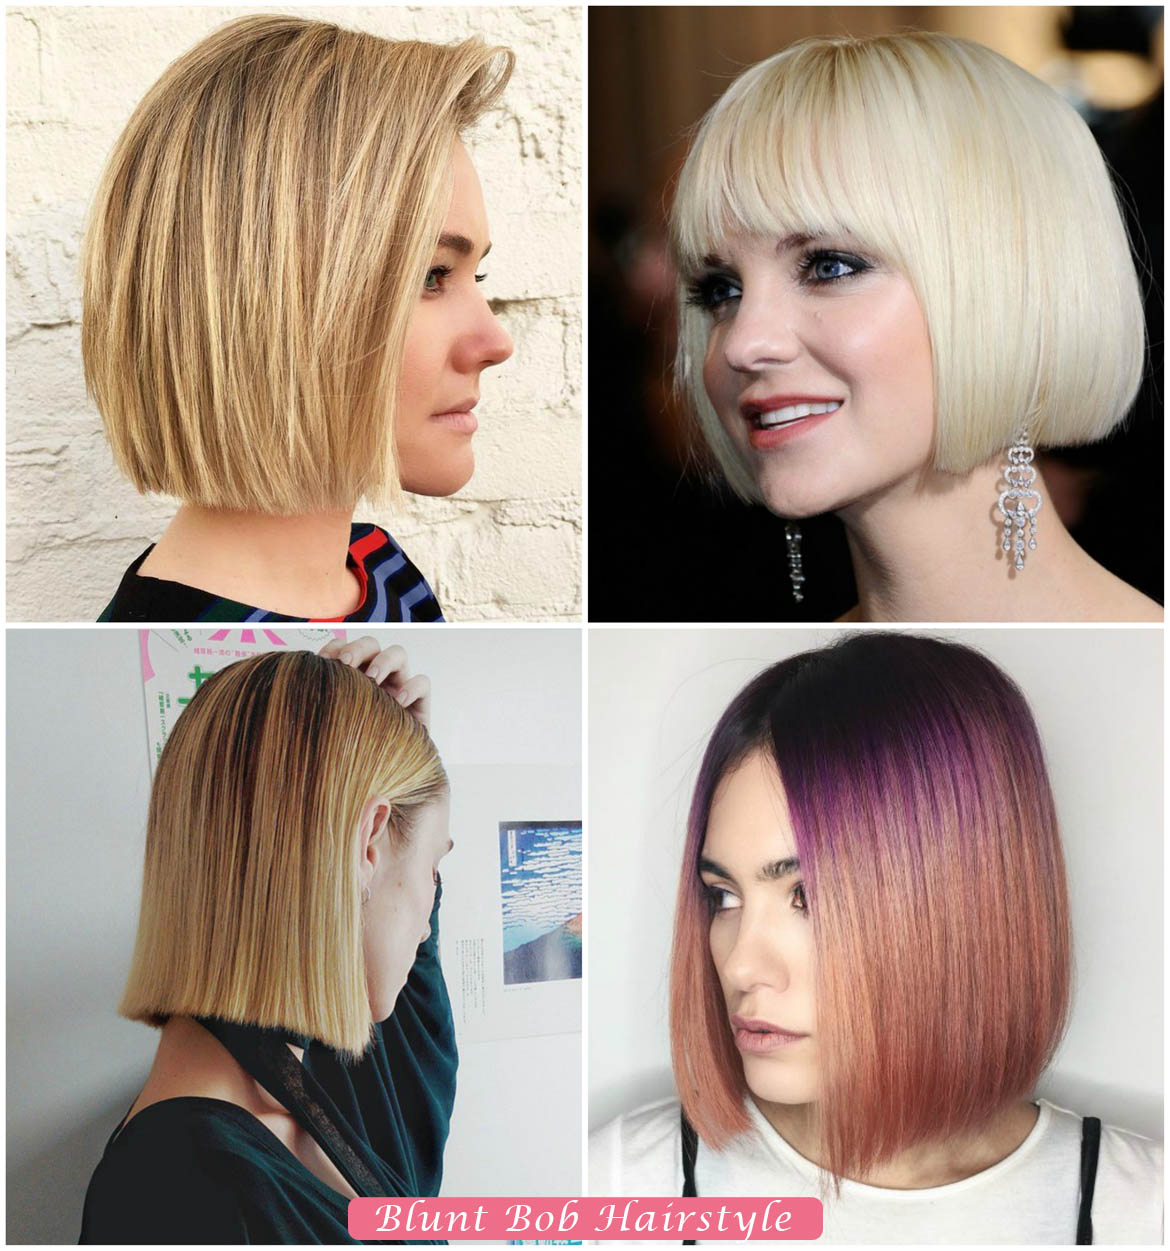 Blunt Bob Hairstyle | Bob Hairstyles for Women